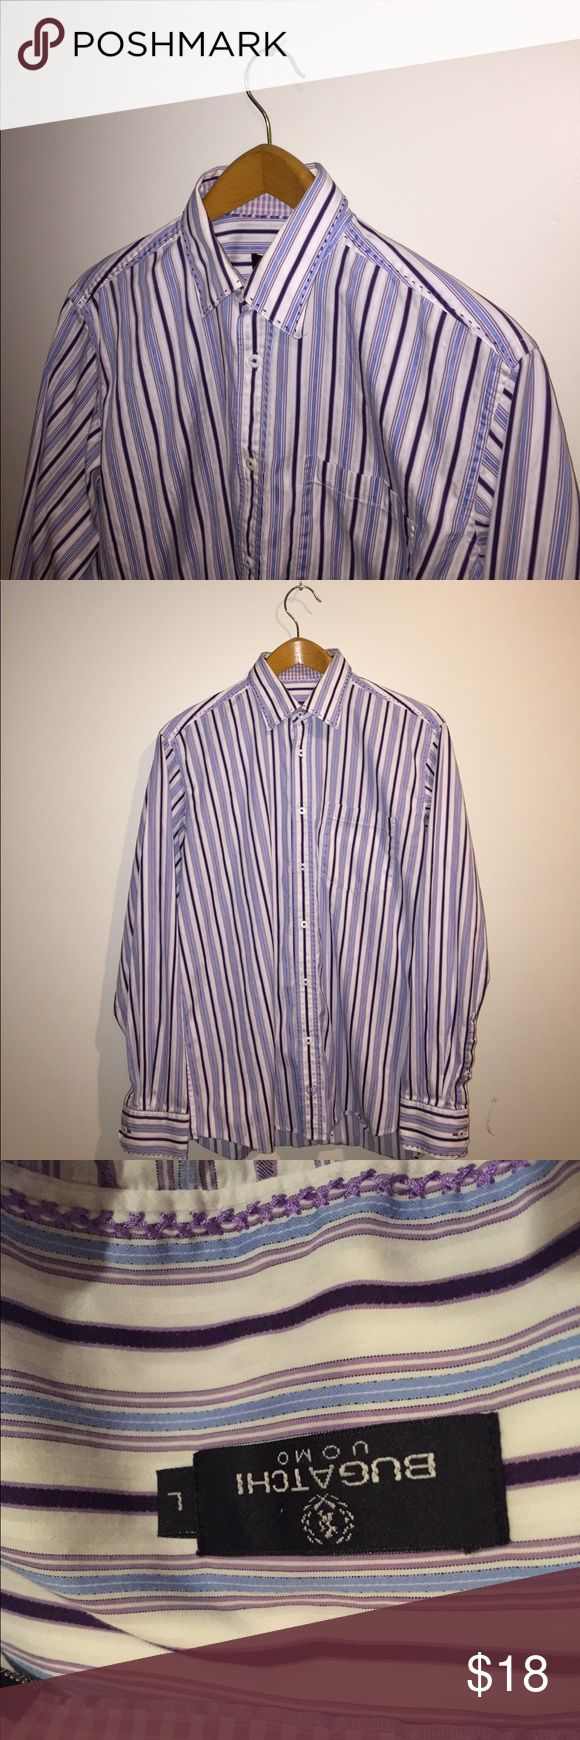 Bugatchi Uomo Button down A Bugatchi button down in a medium size, and a white blue and purple color way. This item is in excellent condition. Bugatchi Shirts Casual Button Down Shirts